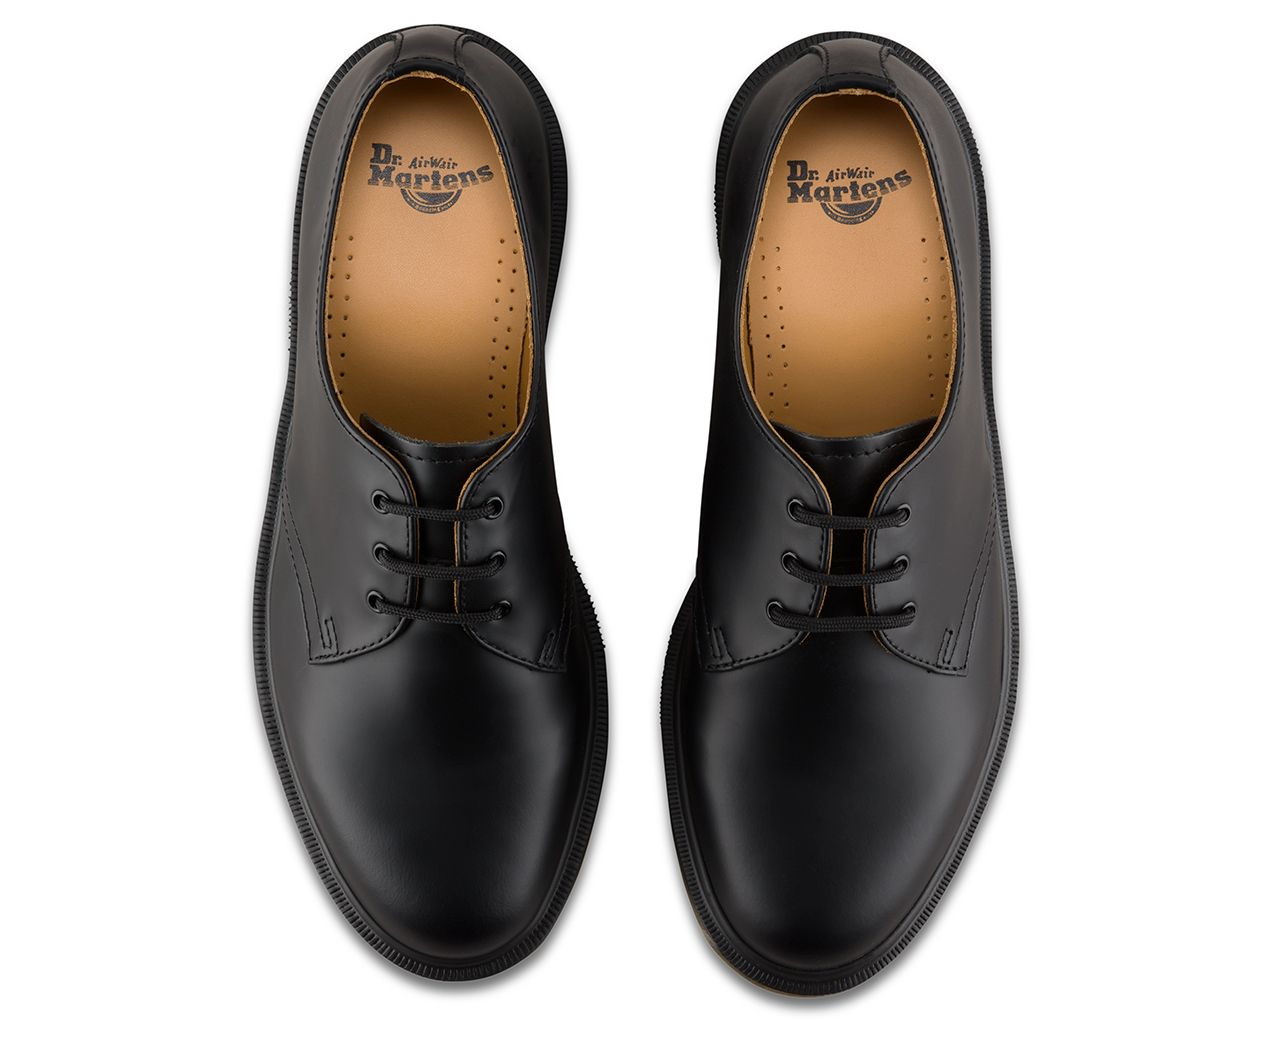 1461 narrow fit smooth | Pop shoes, Dr martens, Dr martens store